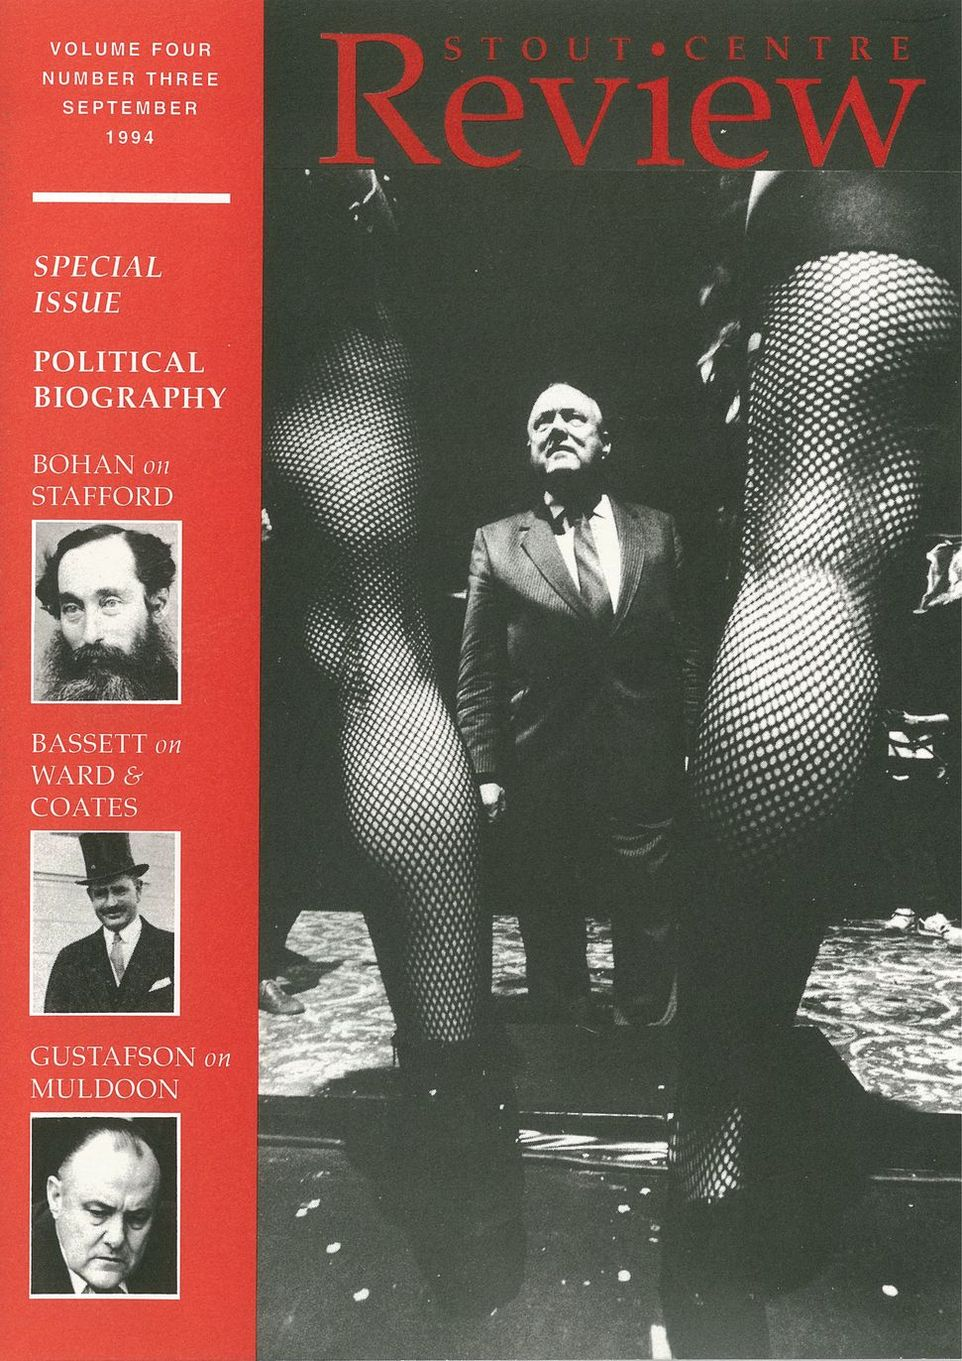 Cover of Stout Centre Review, 1994, V. 4, N. 3.